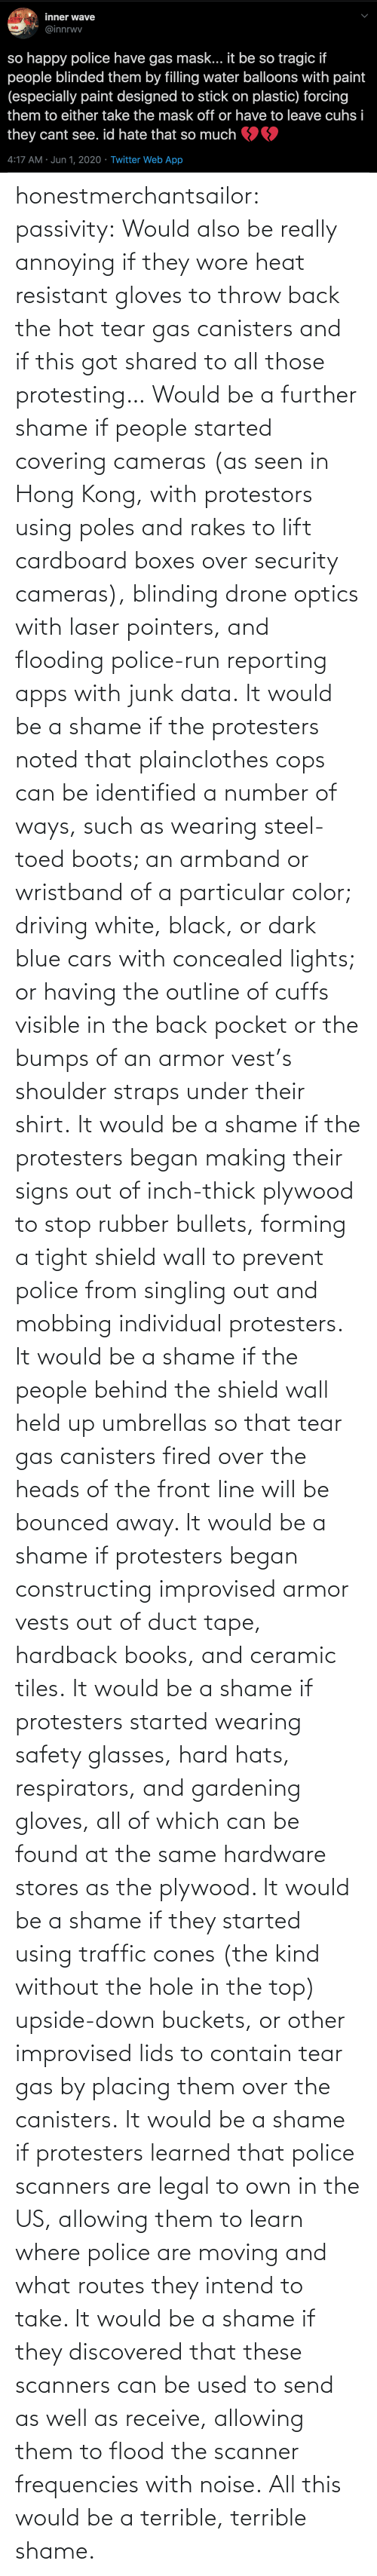 signs: honestmerchantsailor:  passivity: Would also be really annoying if they wore heat resistant gloves to throw back the hot tear gas canisters and if this got shared to all those protesting… Would be a further shame if people started covering cameras (as seen in Hong Kong, with protestors using poles and rakes to lift cardboard boxes over security cameras), blinding drone optics with laser pointers, and flooding police-run reporting apps with junk data. It would be a shame if the protesters noted that plainclothes cops can be identified a number of ways, such as wearing steel-toed boots; an armband or wristband of a particular color; driving white, black, or dark blue cars with concealed lights; or having the outline of cuffs visible in the back pocket or the bumps of an armor vest's shoulder straps under their shirt. It would be a shame if the protesters began making their signs out of inch-thick plywood to stop rubber bullets, forming a tight shield wall to prevent police from singling out and mobbing individual protesters. It would be a shame if the people behind the shield wall held up umbrellas so that tear gas canisters fired over the heads of the front line will be bounced away. It would be a shame if protesters began constructing improvised armor vests out of duct tape, hardback books, and ceramic tiles. It would be a shame if protesters started wearing safety glasses, hard hats, respirators, and gardening gloves, all of which can be found at the same hardware stores as the plywood. It would be a shame if they started using traffic cones (the kind without the hole in the top) upside-down buckets, or other improvised lids to contain tear gas by placing them over the canisters. It would be a shame if protesters learned that police scanners are legal to own in the US, allowing them to learn where police are moving and what routes they intend to take. It would be a shame if they discovered that these scanners can be used to send as well as receive, allowing them to flood the scanner frequencies with noise. All this would be a terrible, terrible shame.